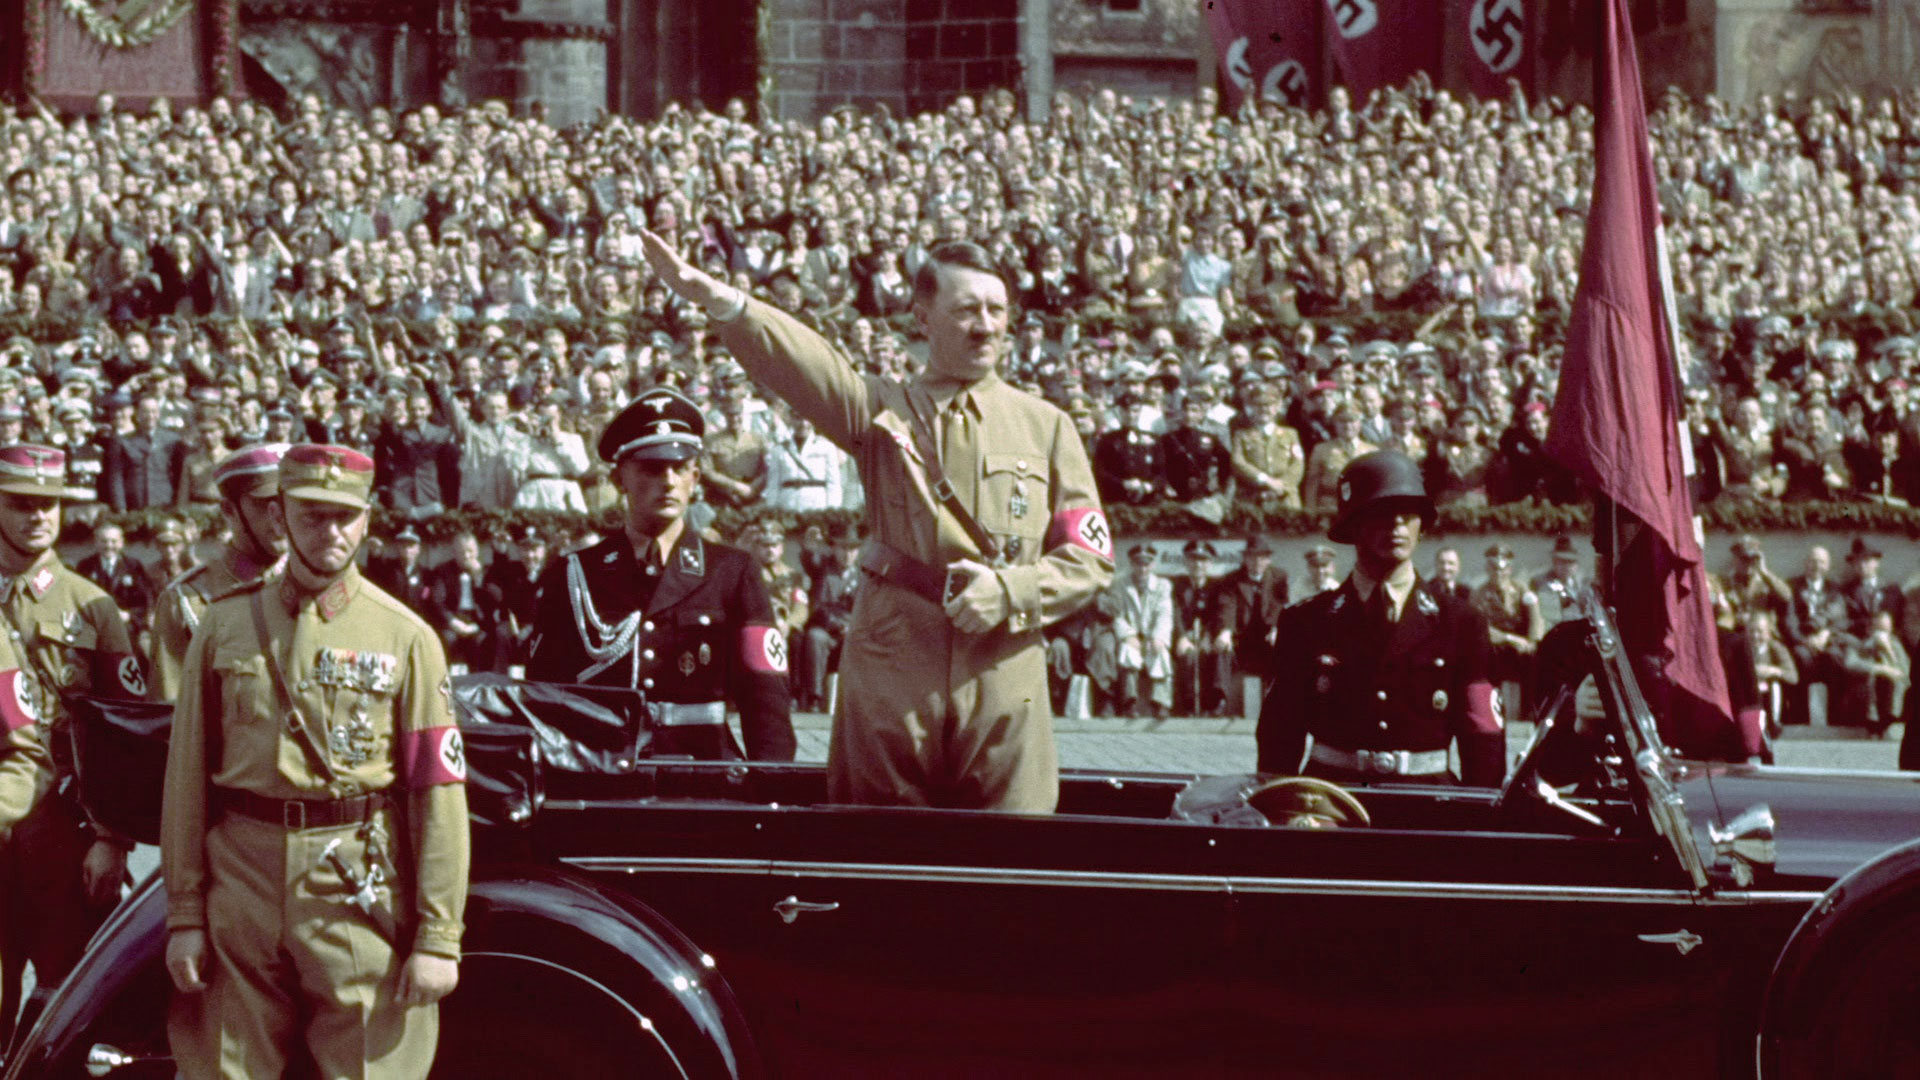 Germany was ruled by Adolf Hitler